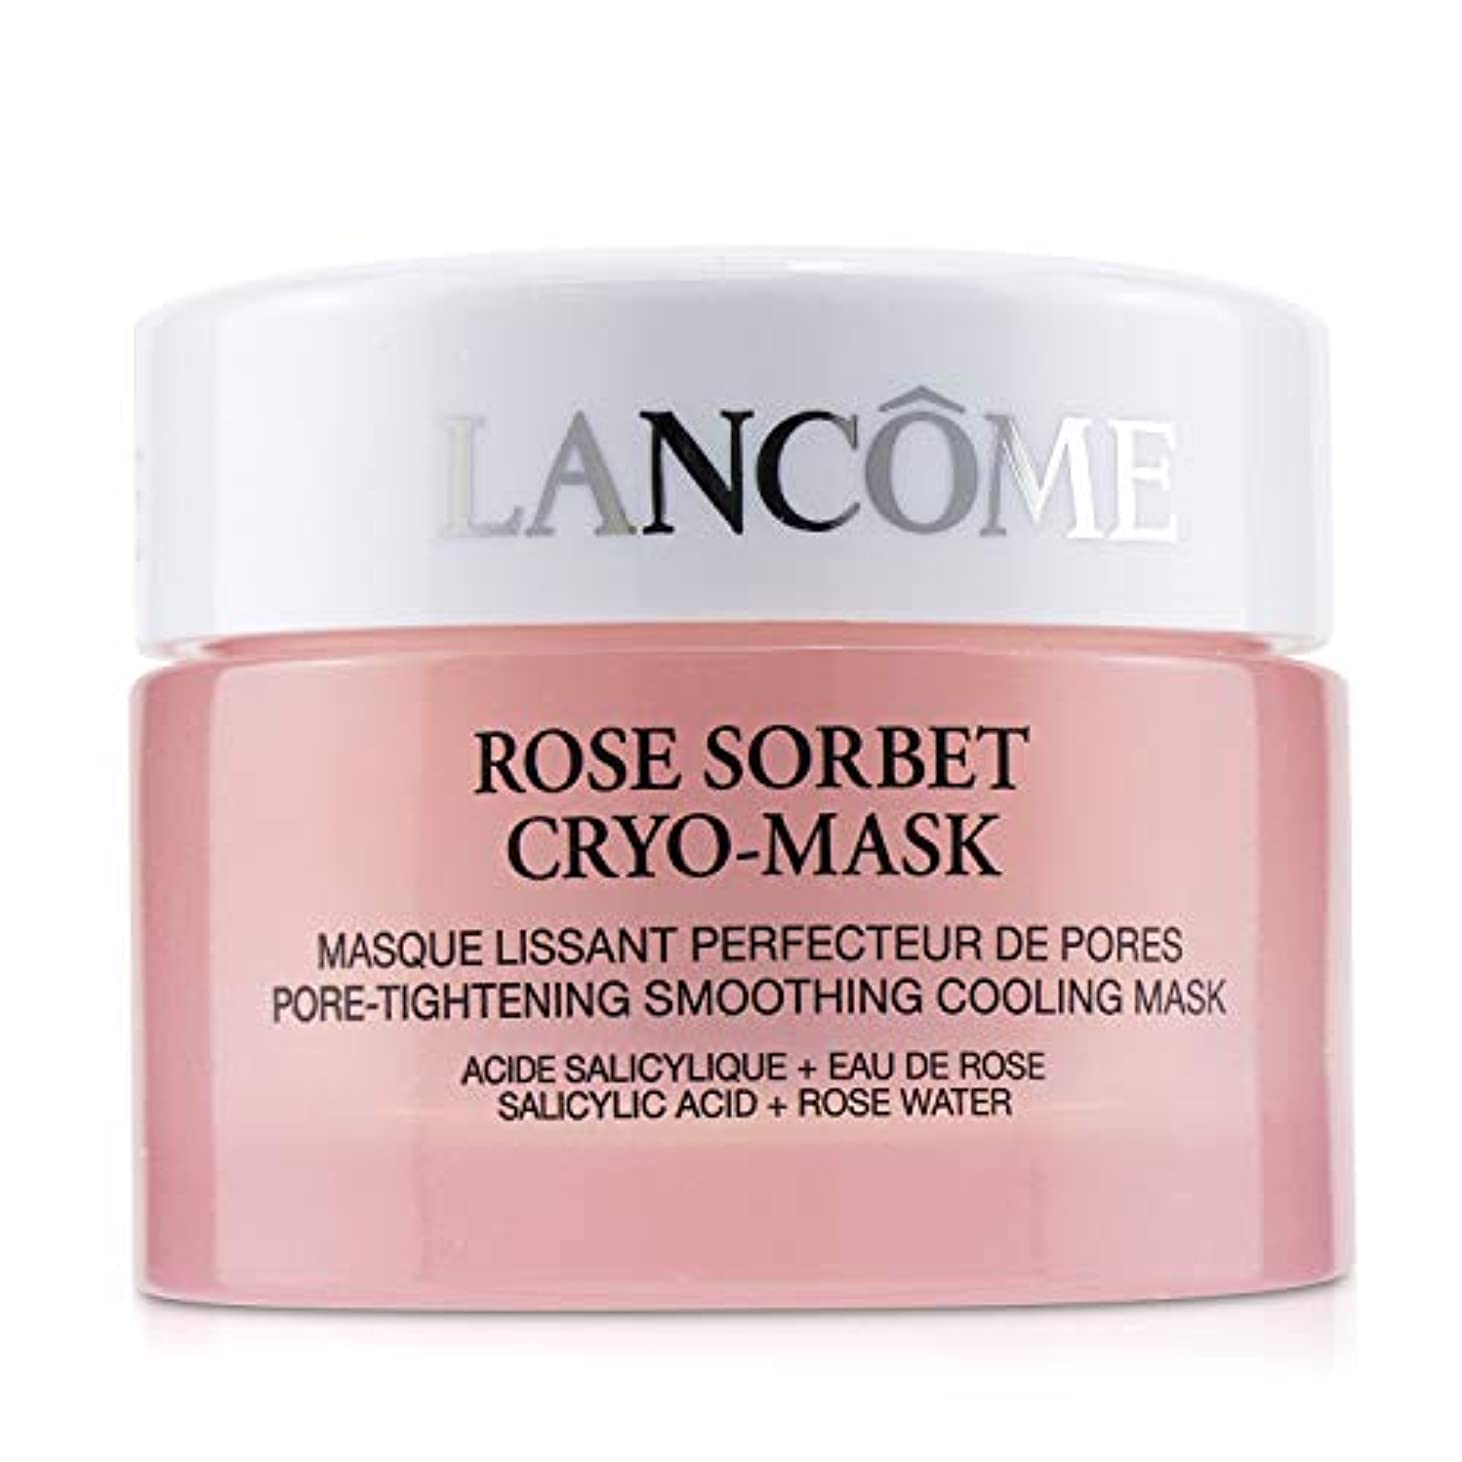 ランコム Rose Sorbet Cryo-Mask - Pore Tightening Smoothing Cooling Mask 50ml/1.7oz並行輸入品